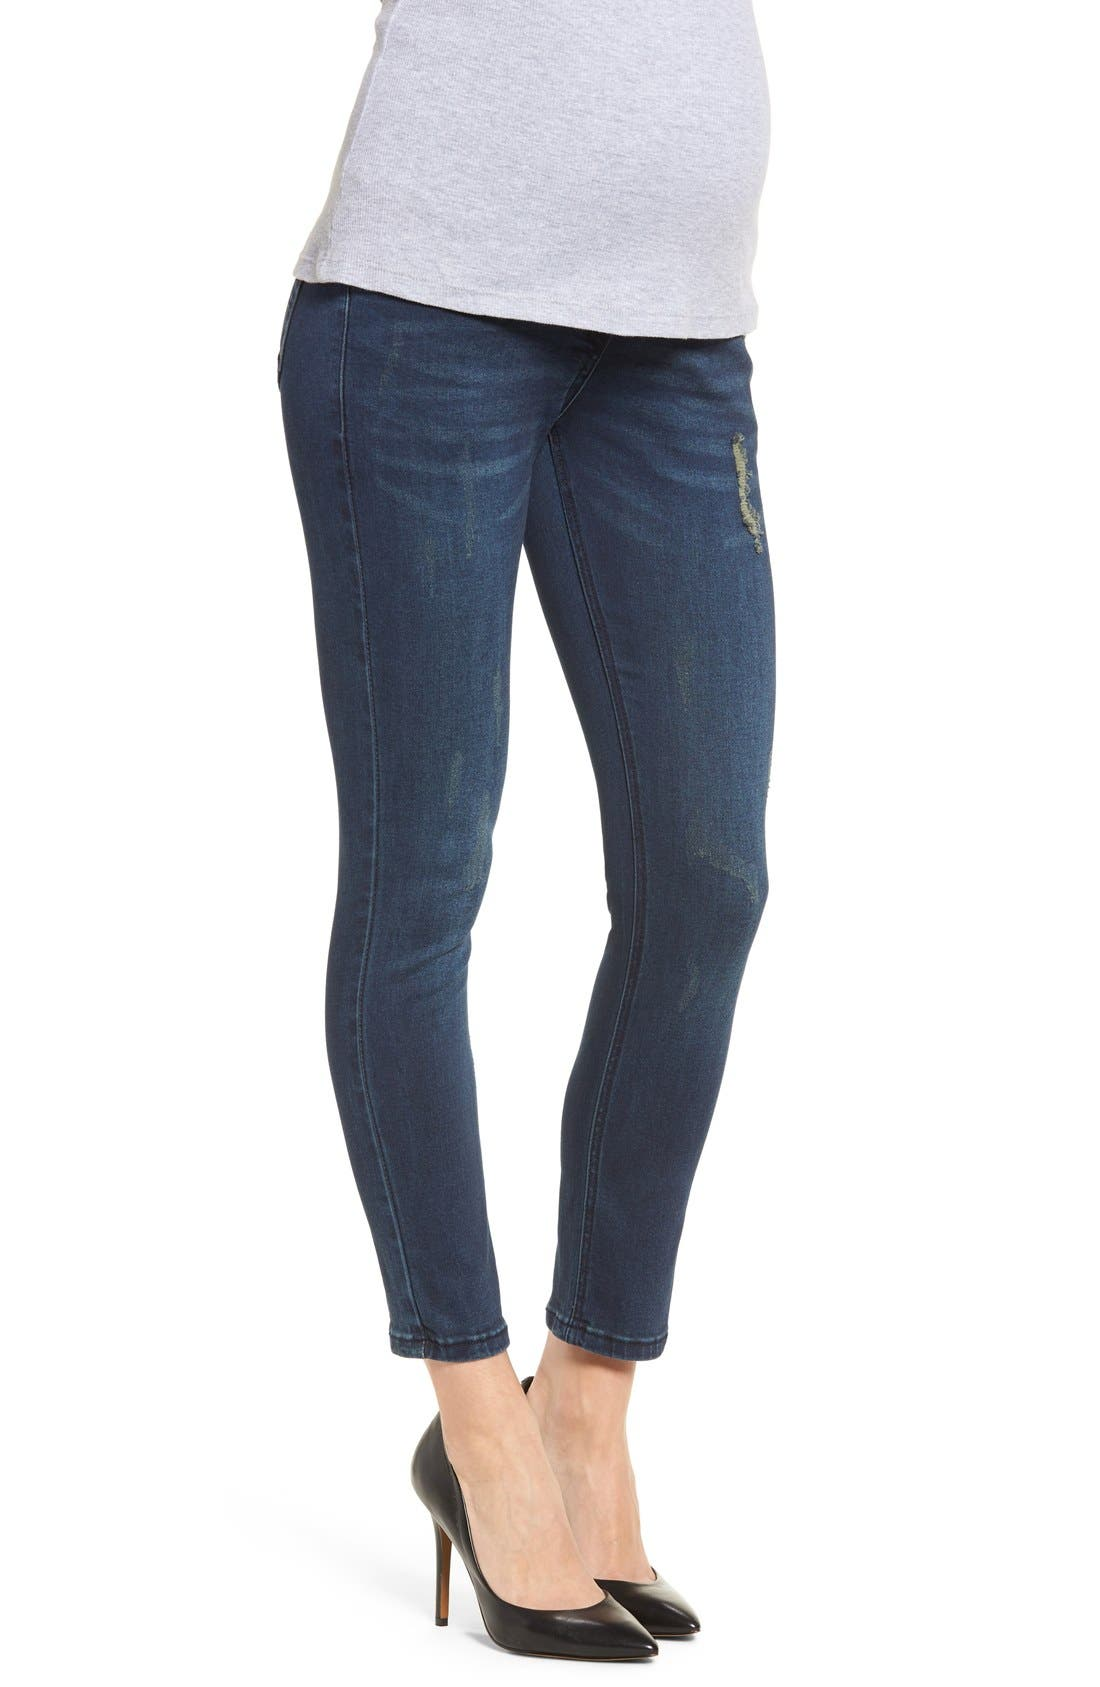 DistressedSkinnyMaternity Jeans,                             Alternate thumbnail 3, color,                             CLASSIC WASH